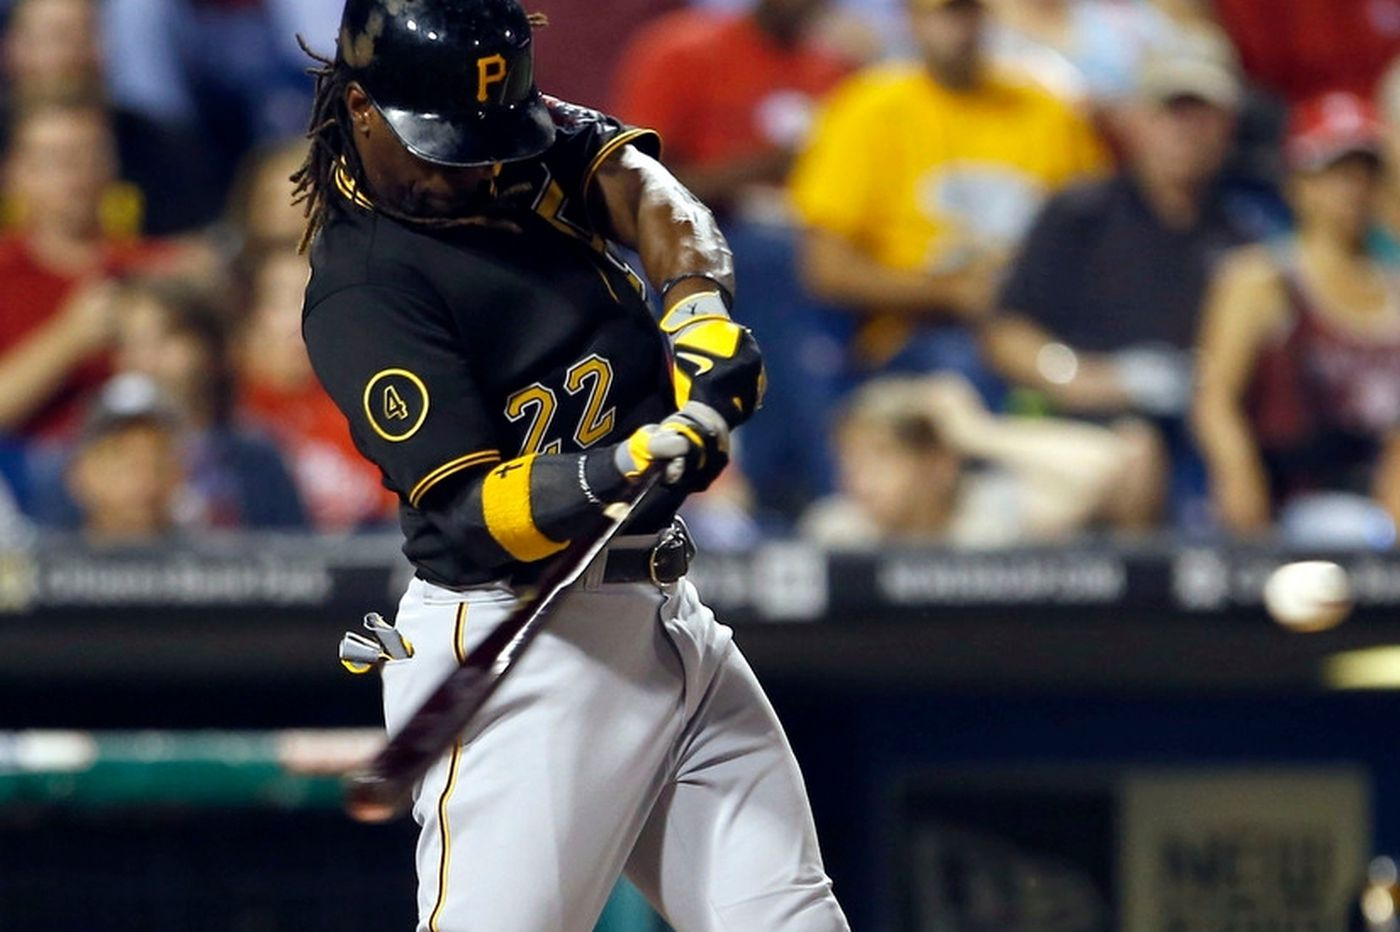 Phillies signing Andrew McCutchen at this age and salary is a risky free-agency move   Bob Brookover